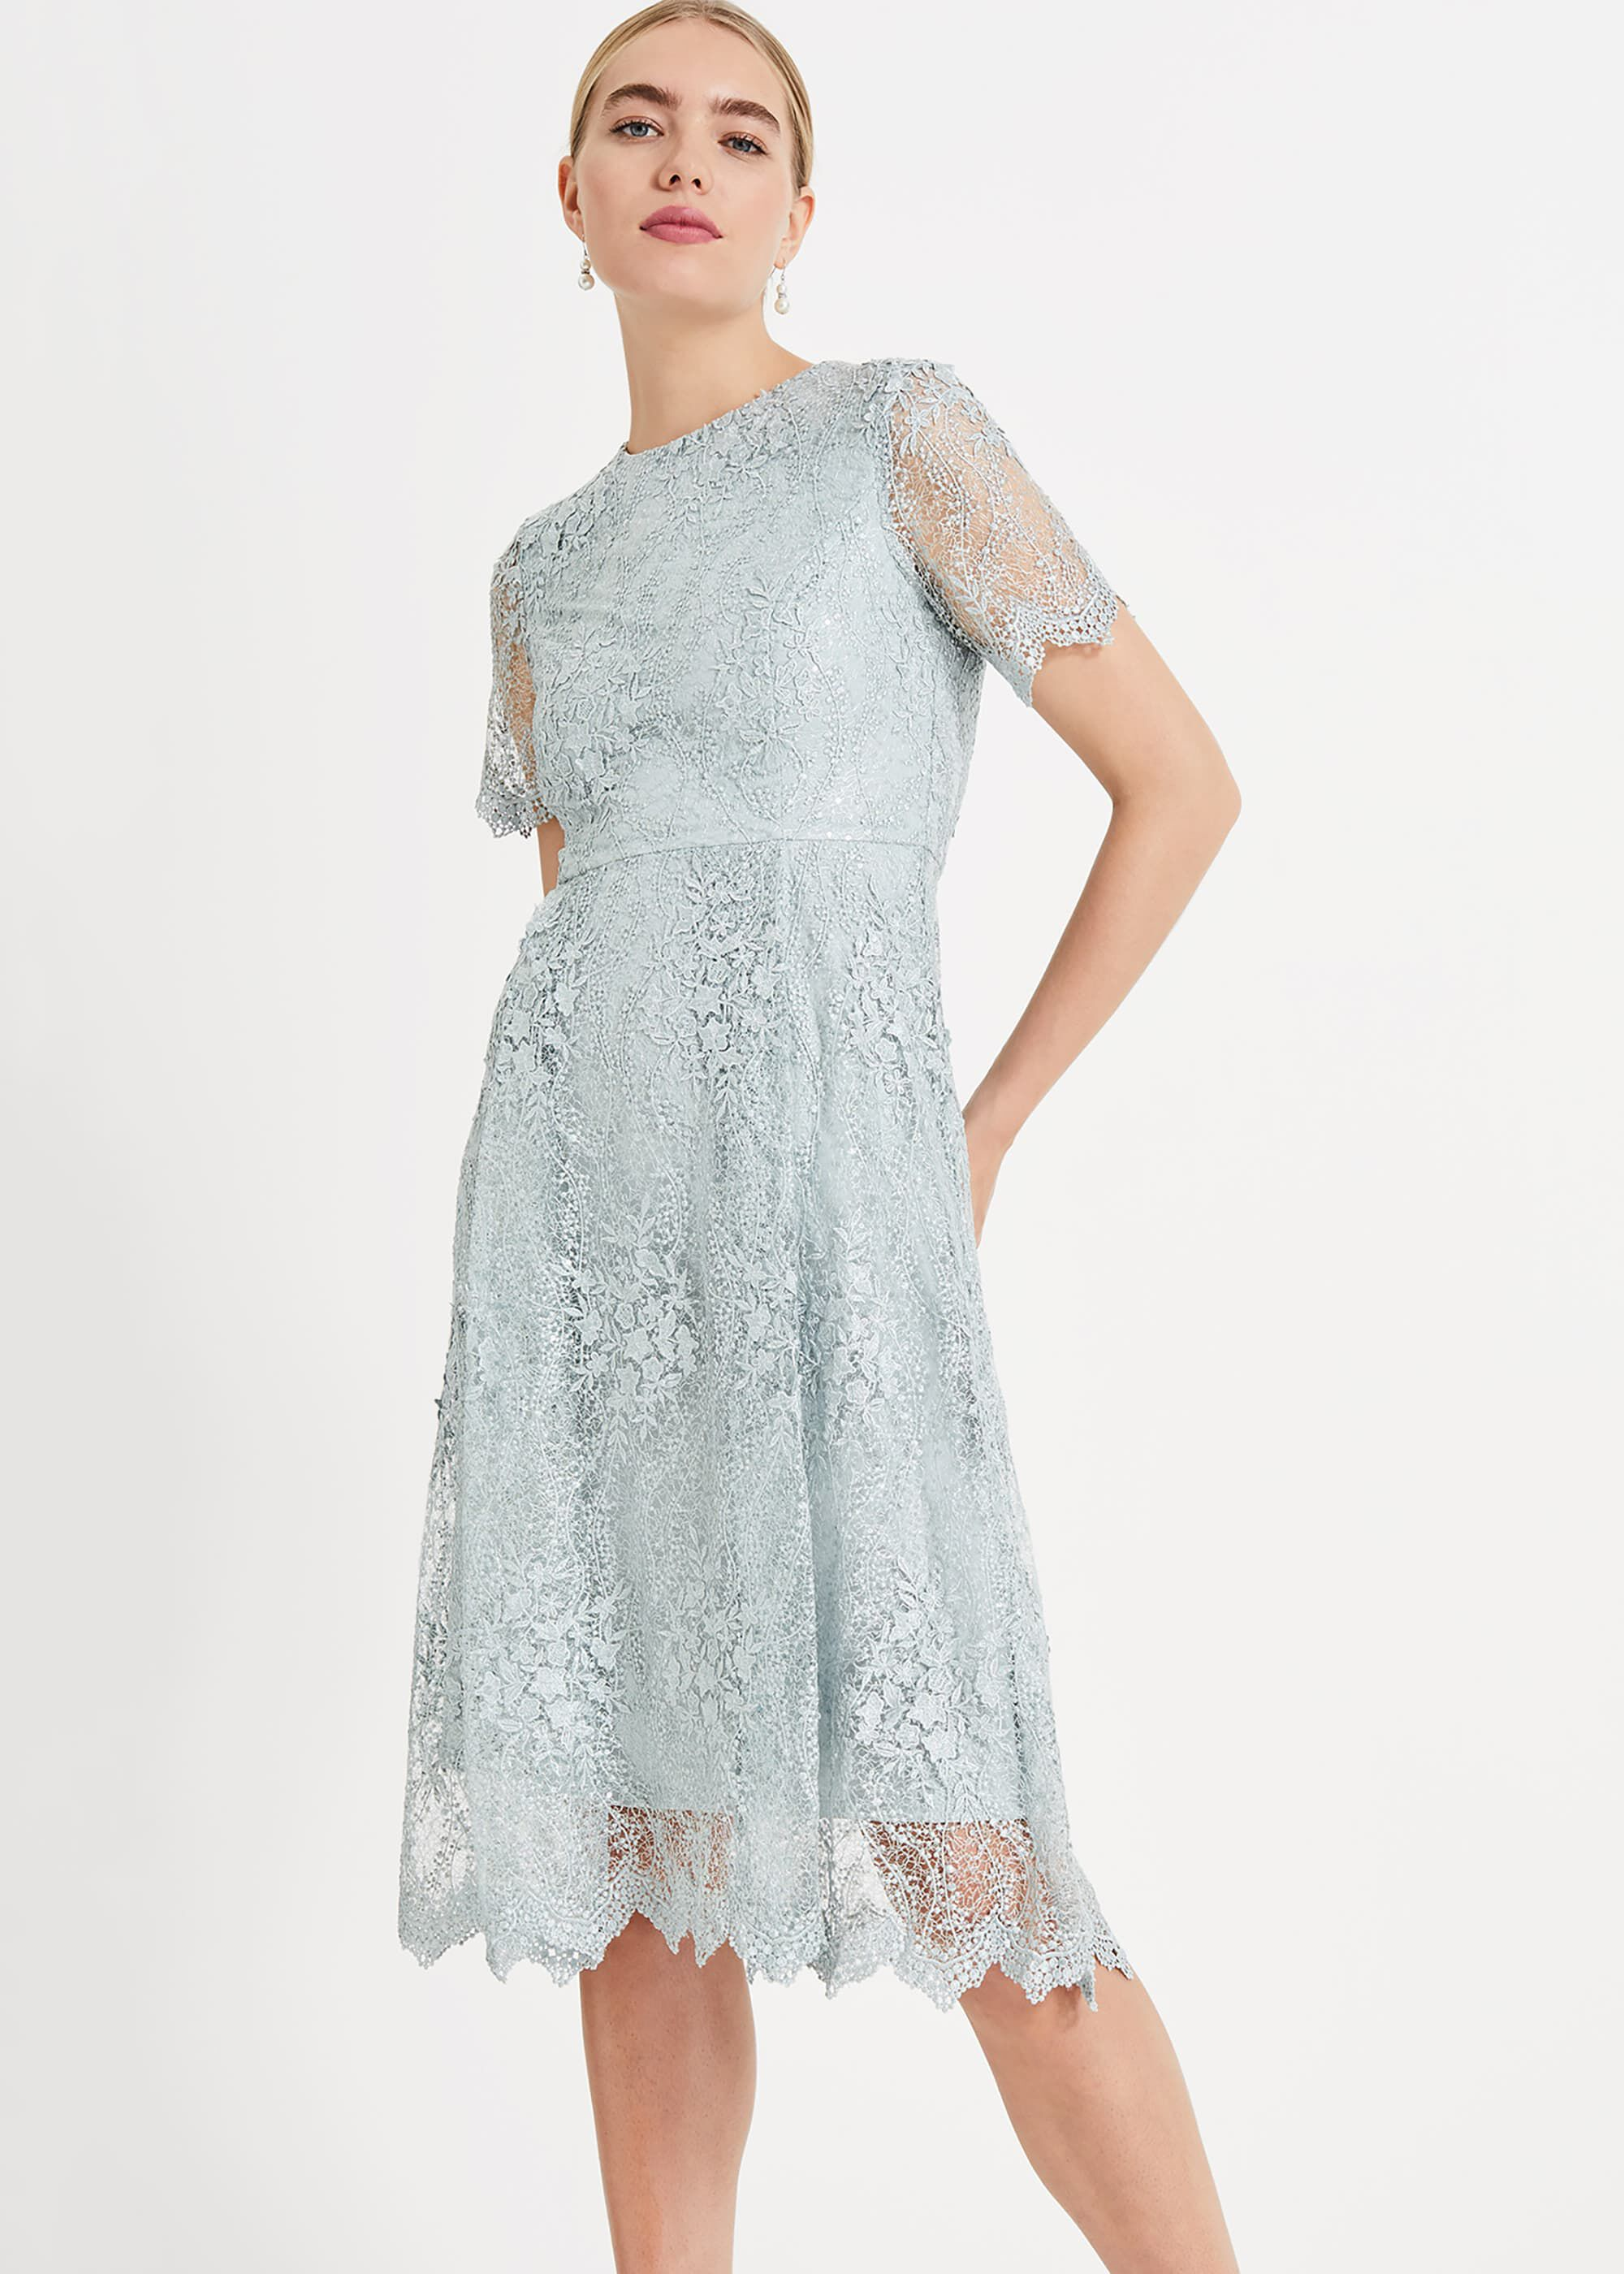 Phase Eight Malia Sequin Lace Dress, Pink, Fit & Flare, Occasion Dress